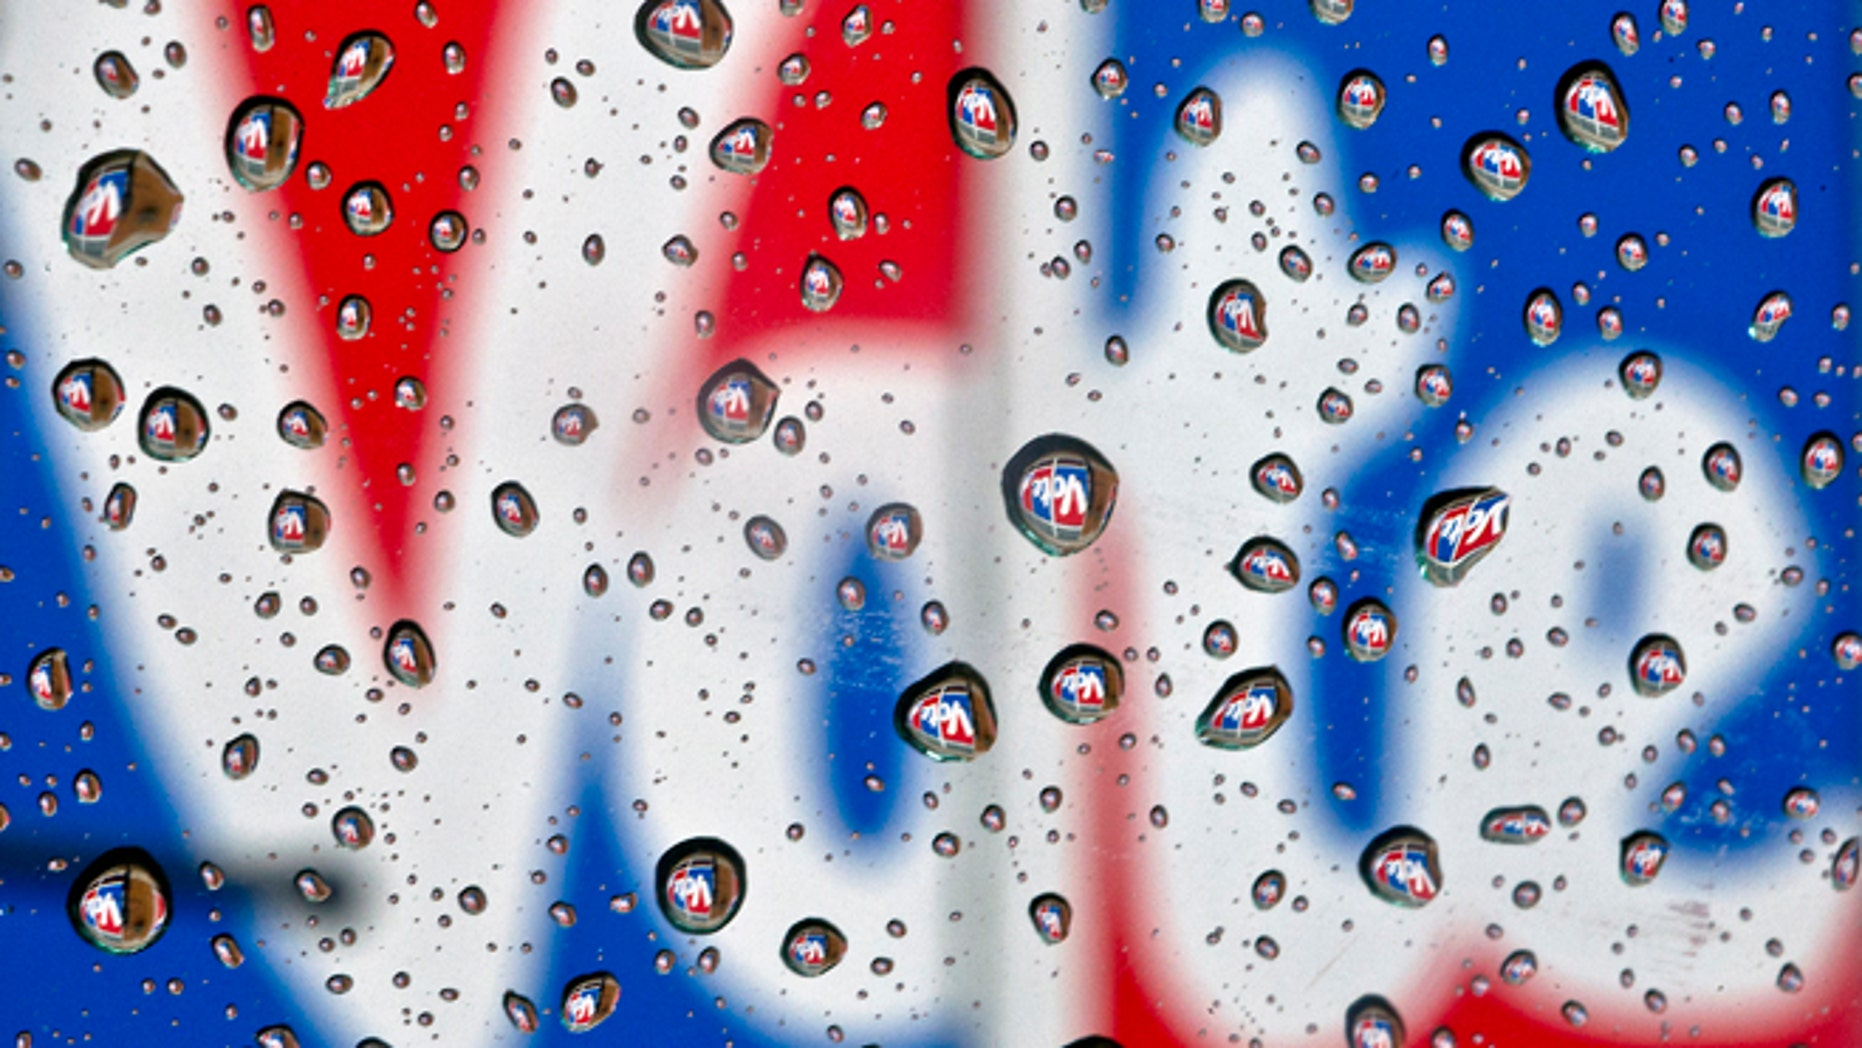 The word Vote, part of a mural to encourage voting, is reflected in raindrops in Danville, Ky., on Monday, Oct. 1, 2012. President Barack Obama and Republican challenger Mitt Romney are hunkered down Monday, practicing for their first debate to take place in Denver on Wednesday, Oct. 3. (AP Photo/The Advocate Messenger, Clay Jackson)